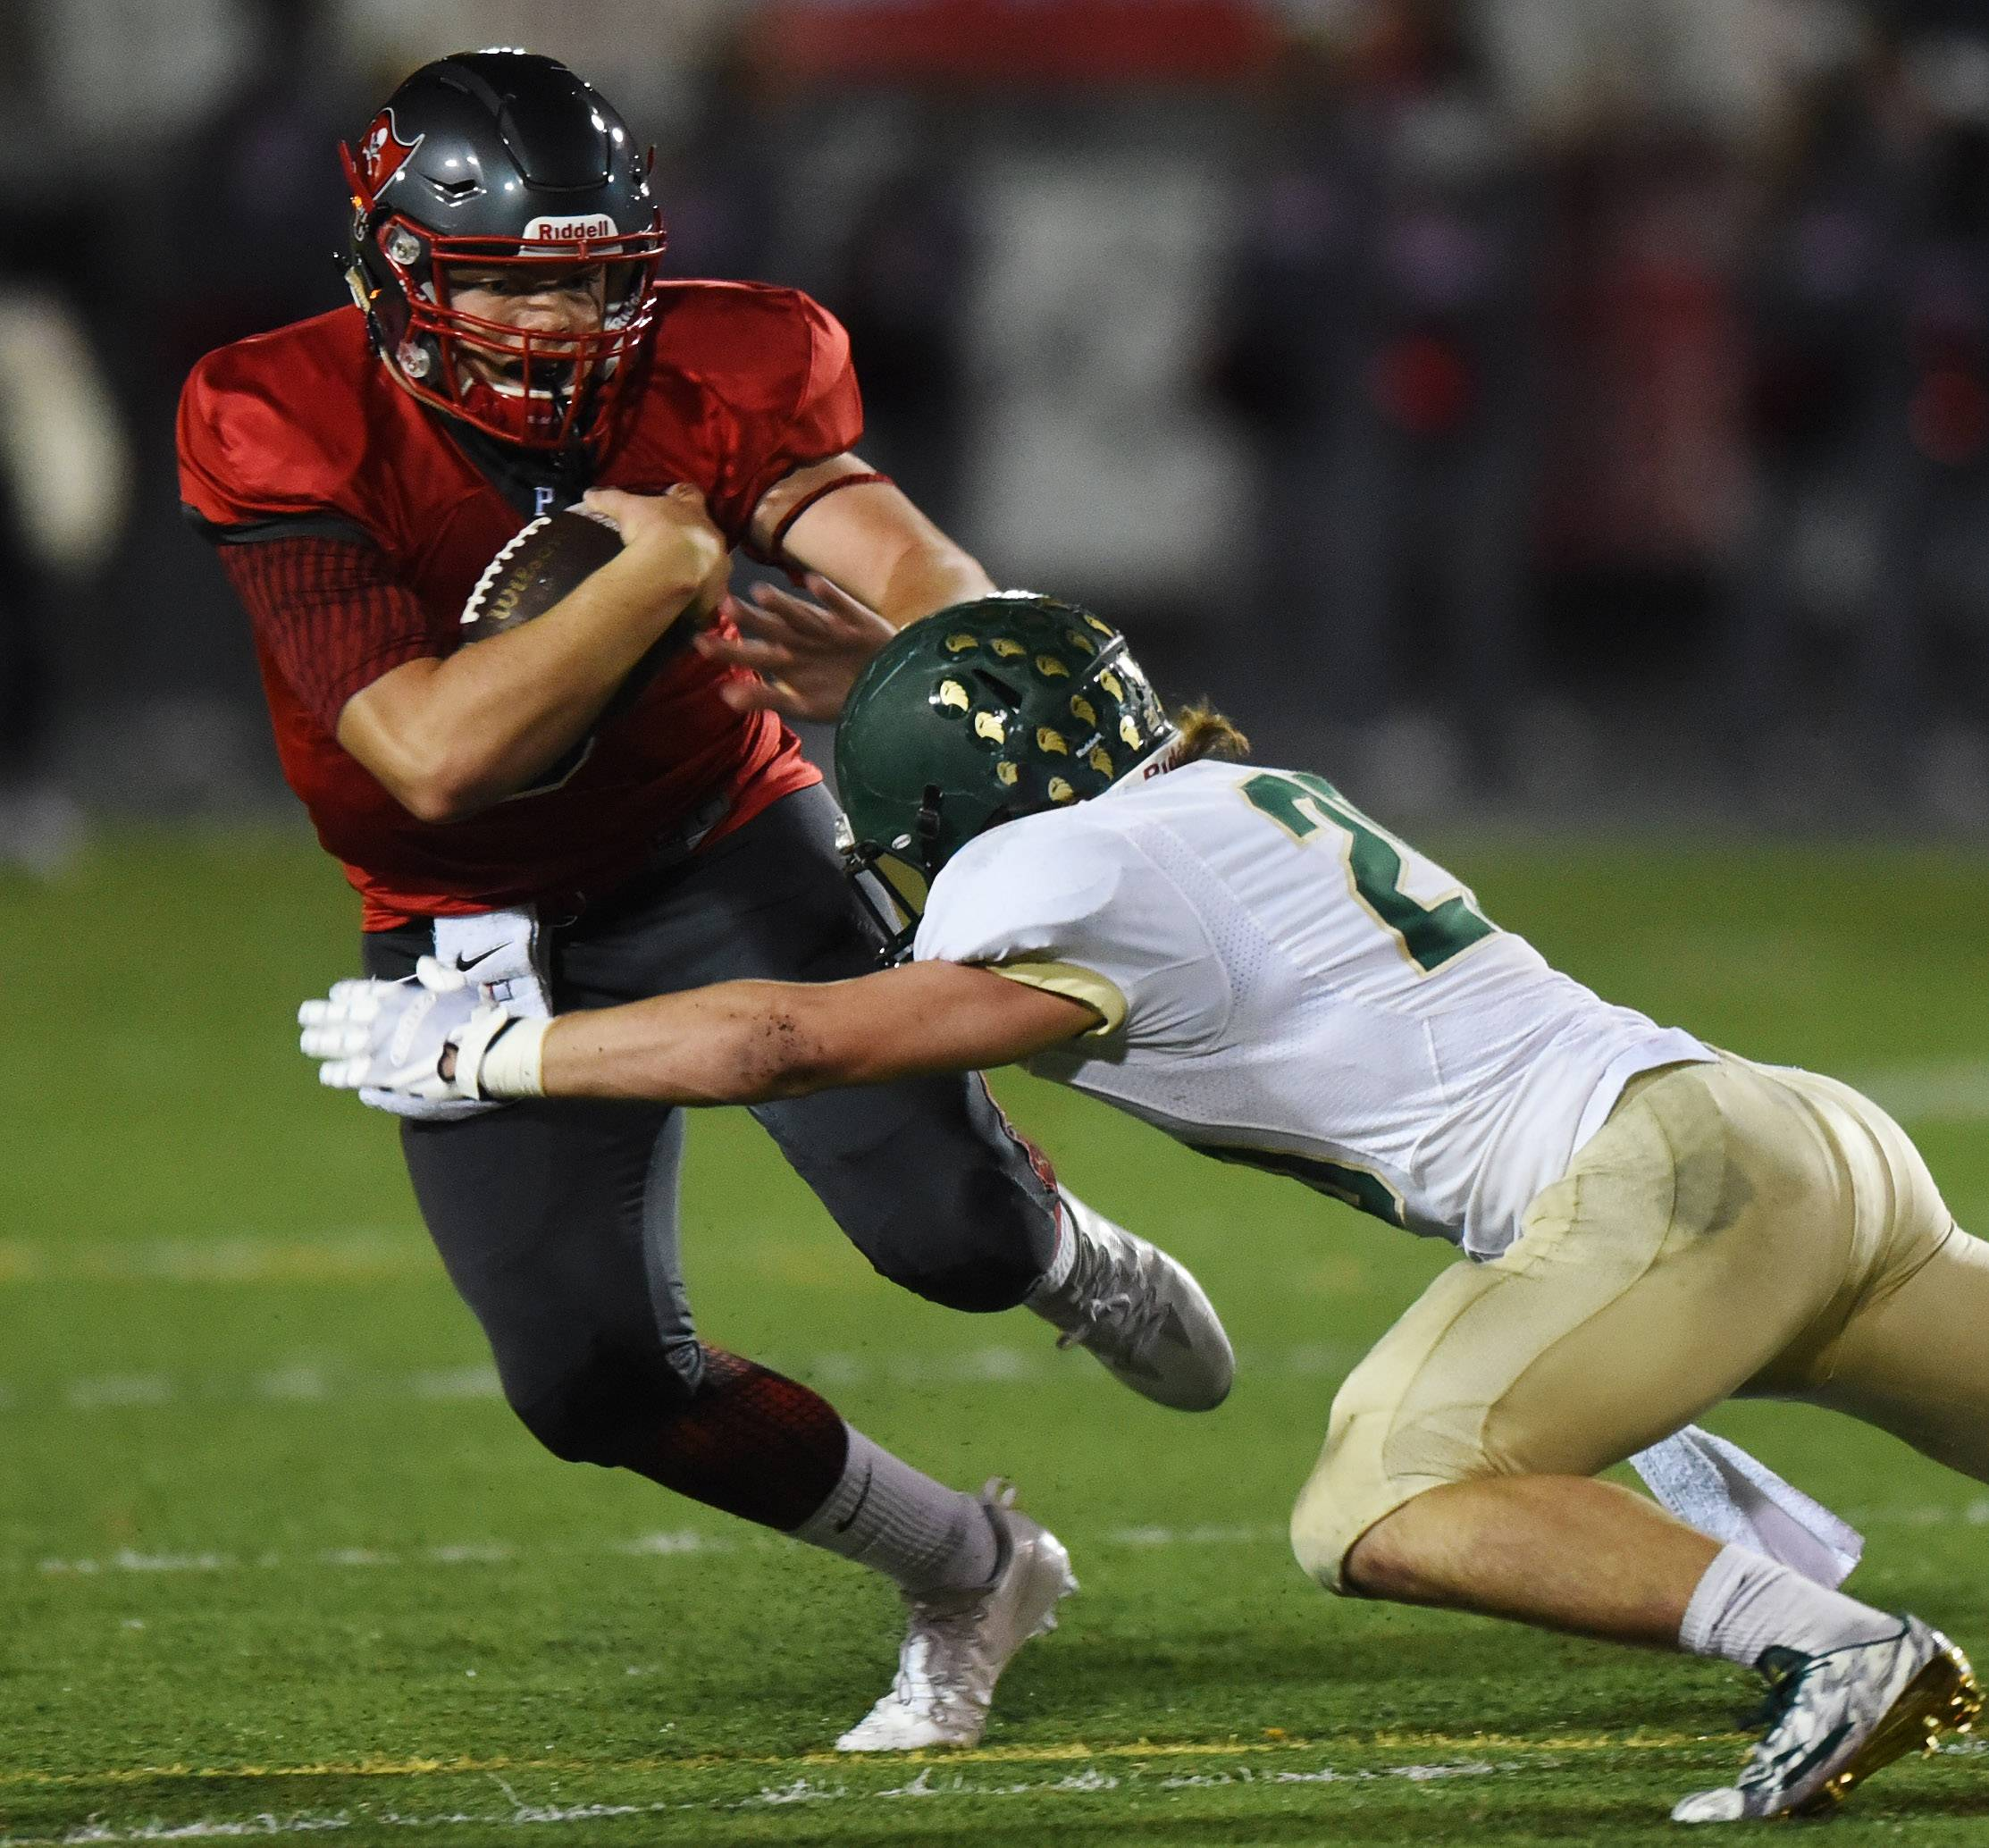 Palatine quarterback Zachary Oles carries the ball before being tackled by Fremd's Joe Schneider during Friday's game.